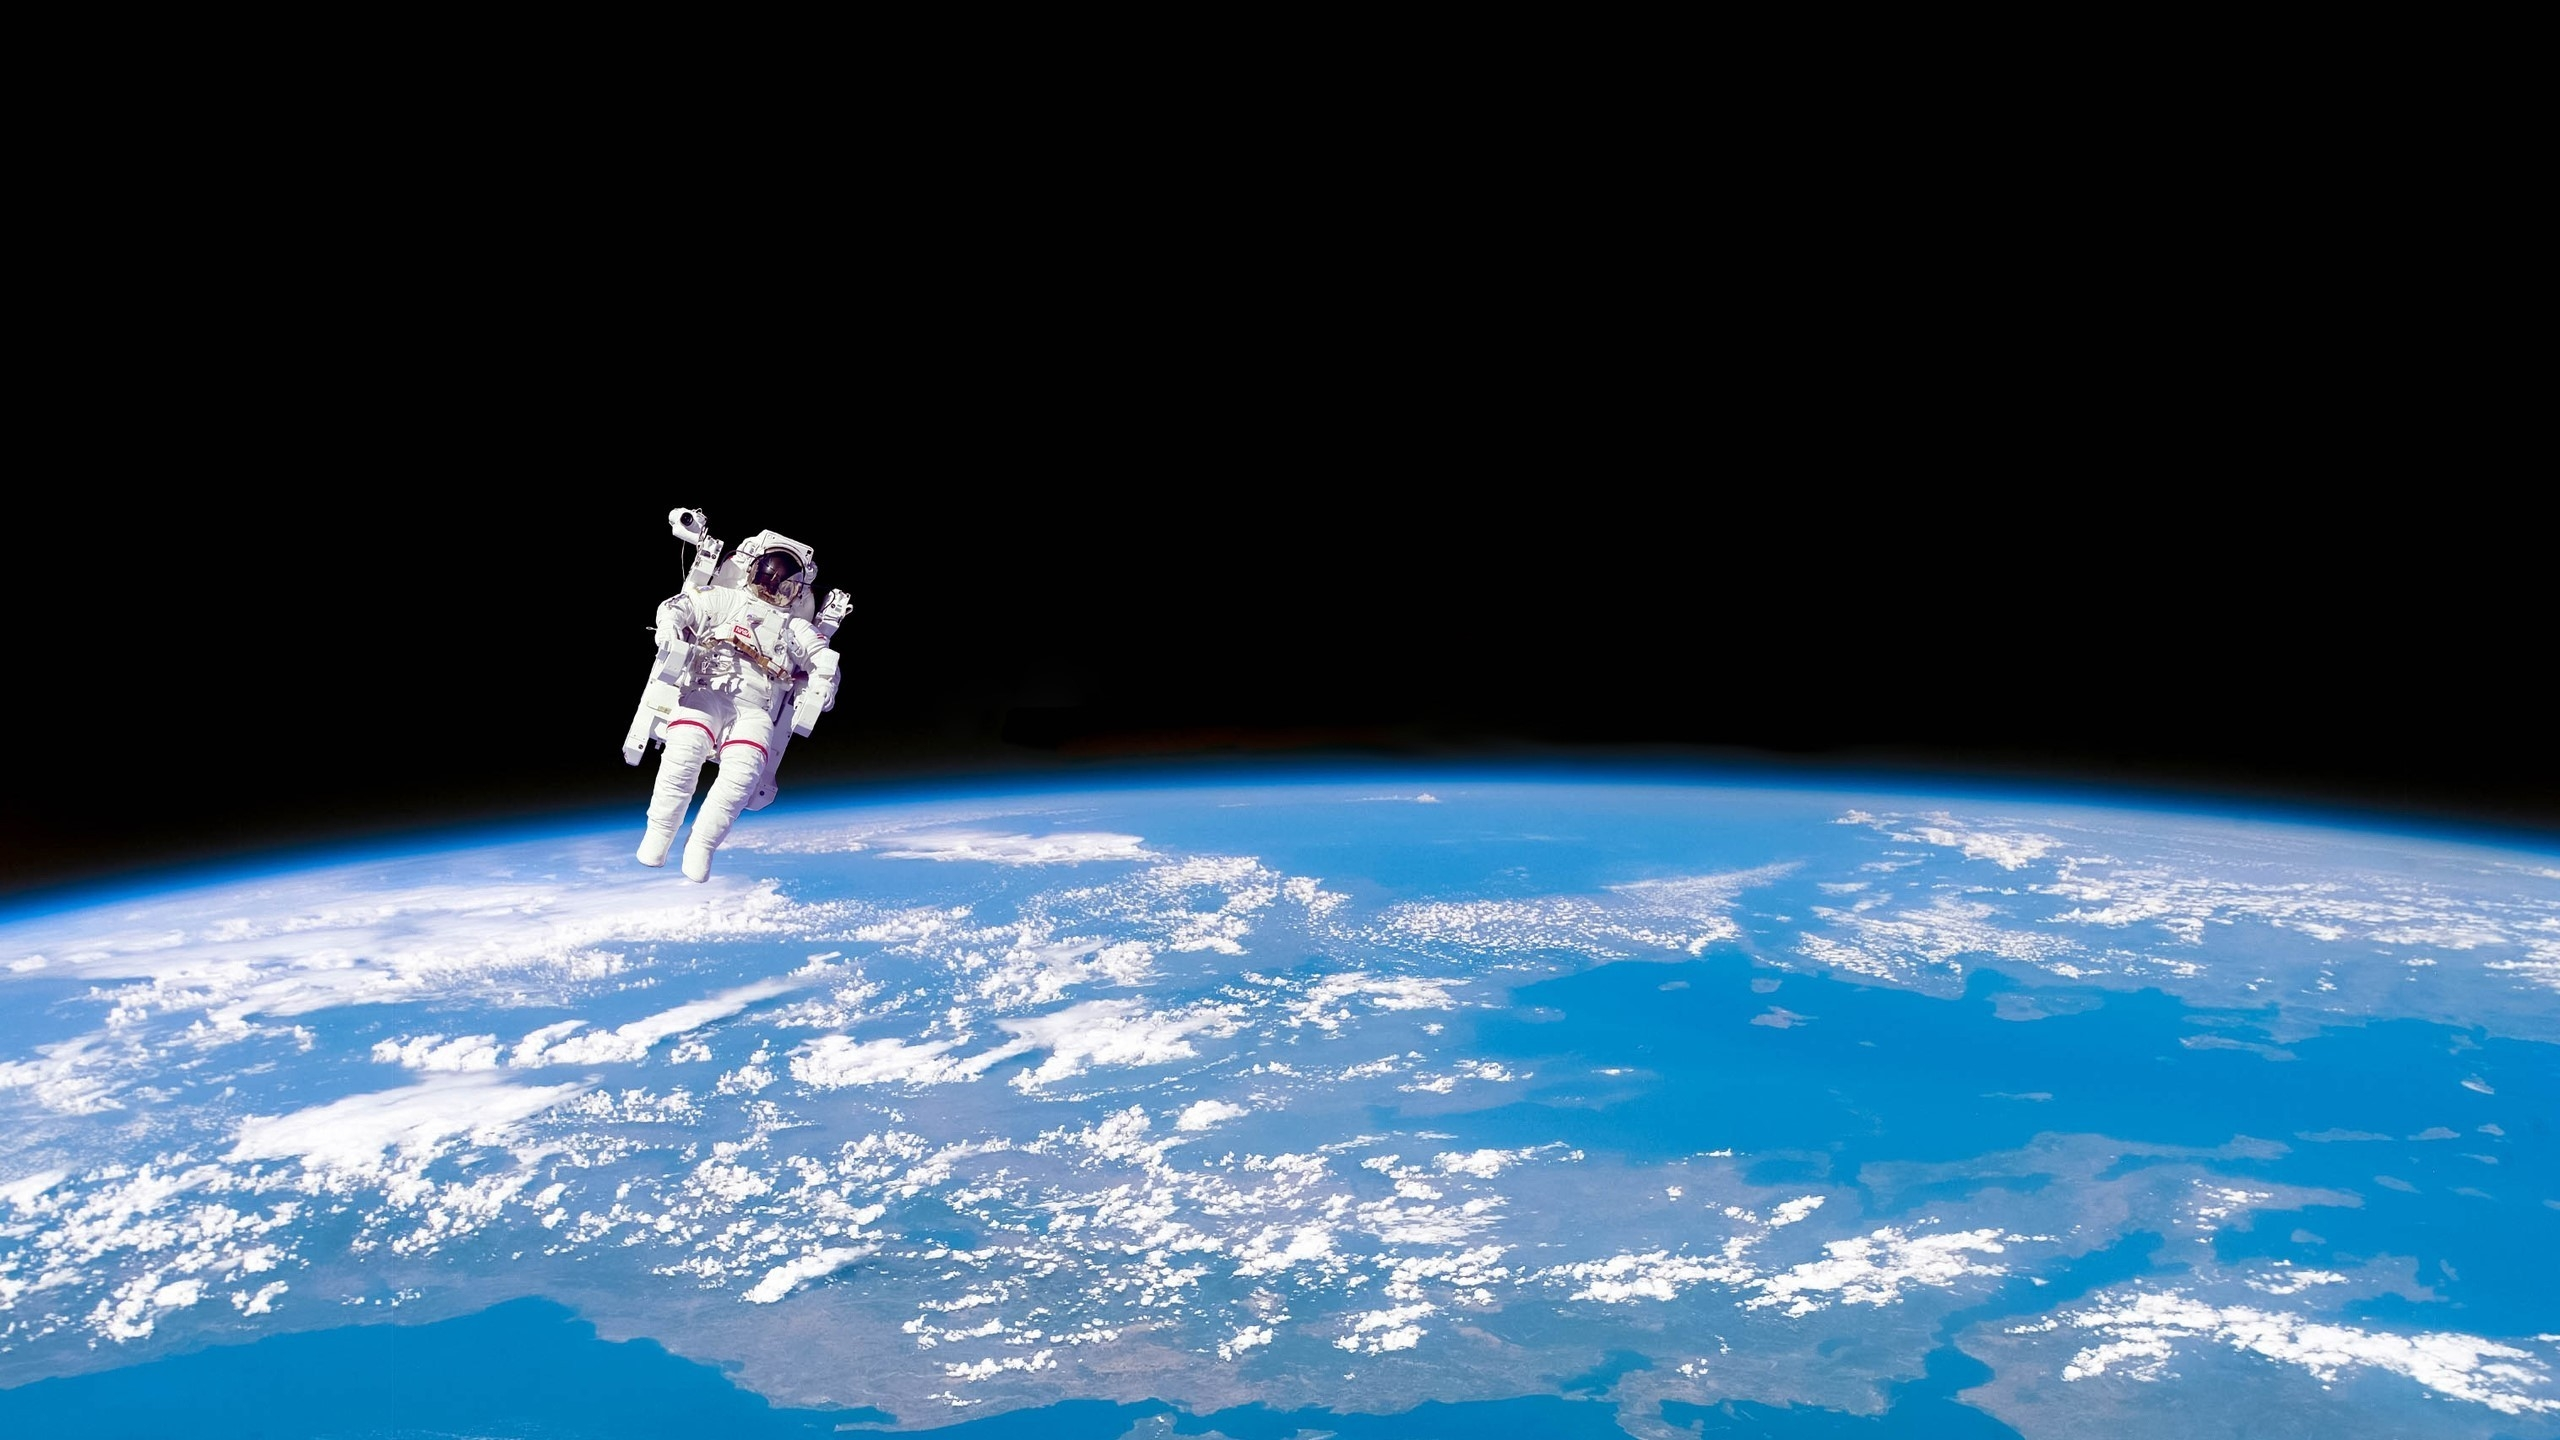 Astronaut in space 2560x1440 hdtv wallpaper - Space 2560 x 1440 ...